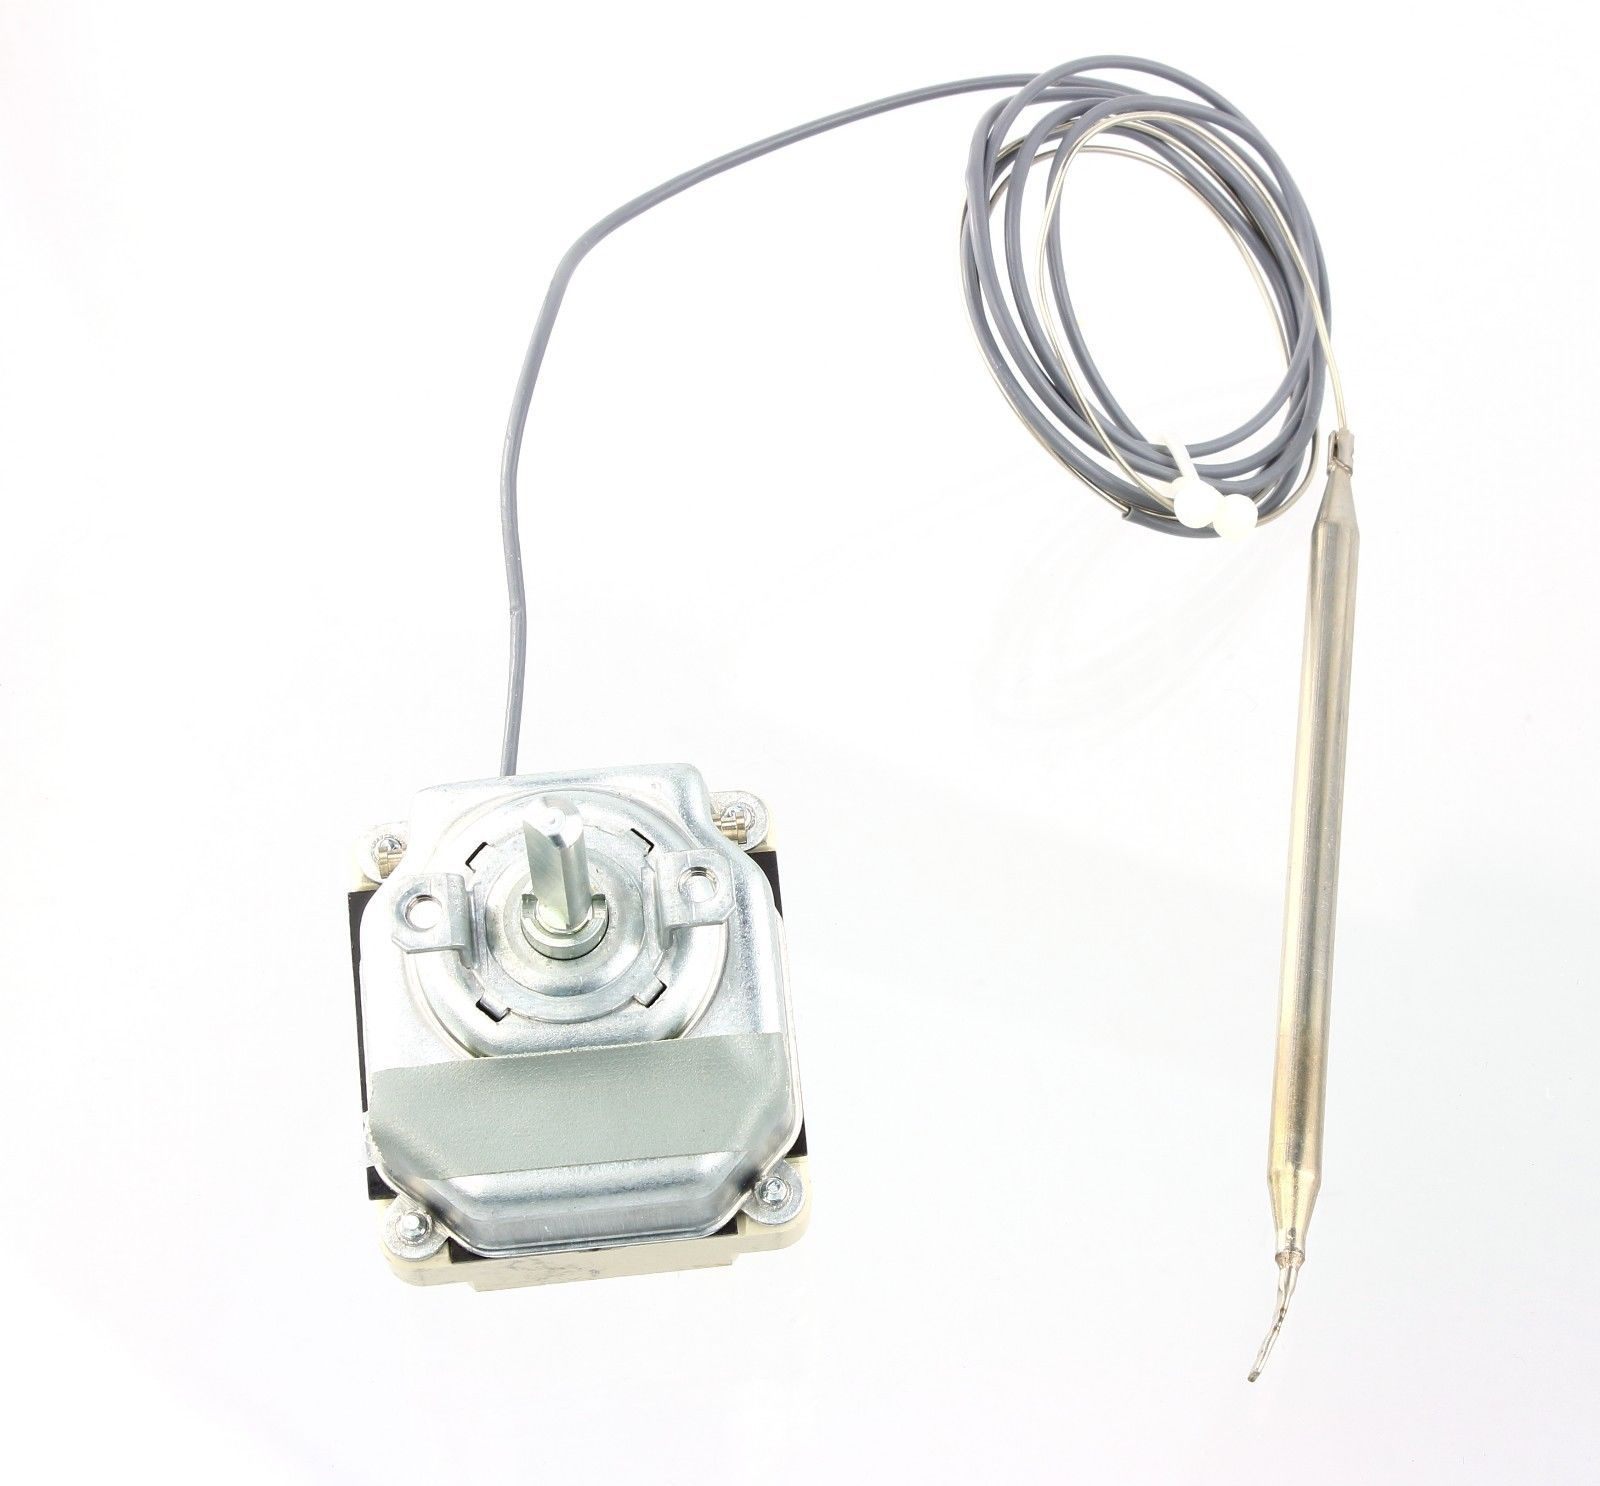 VALENTINE Electric Fryer Thermostat V Series 7 Pin 06311 55.34235.020